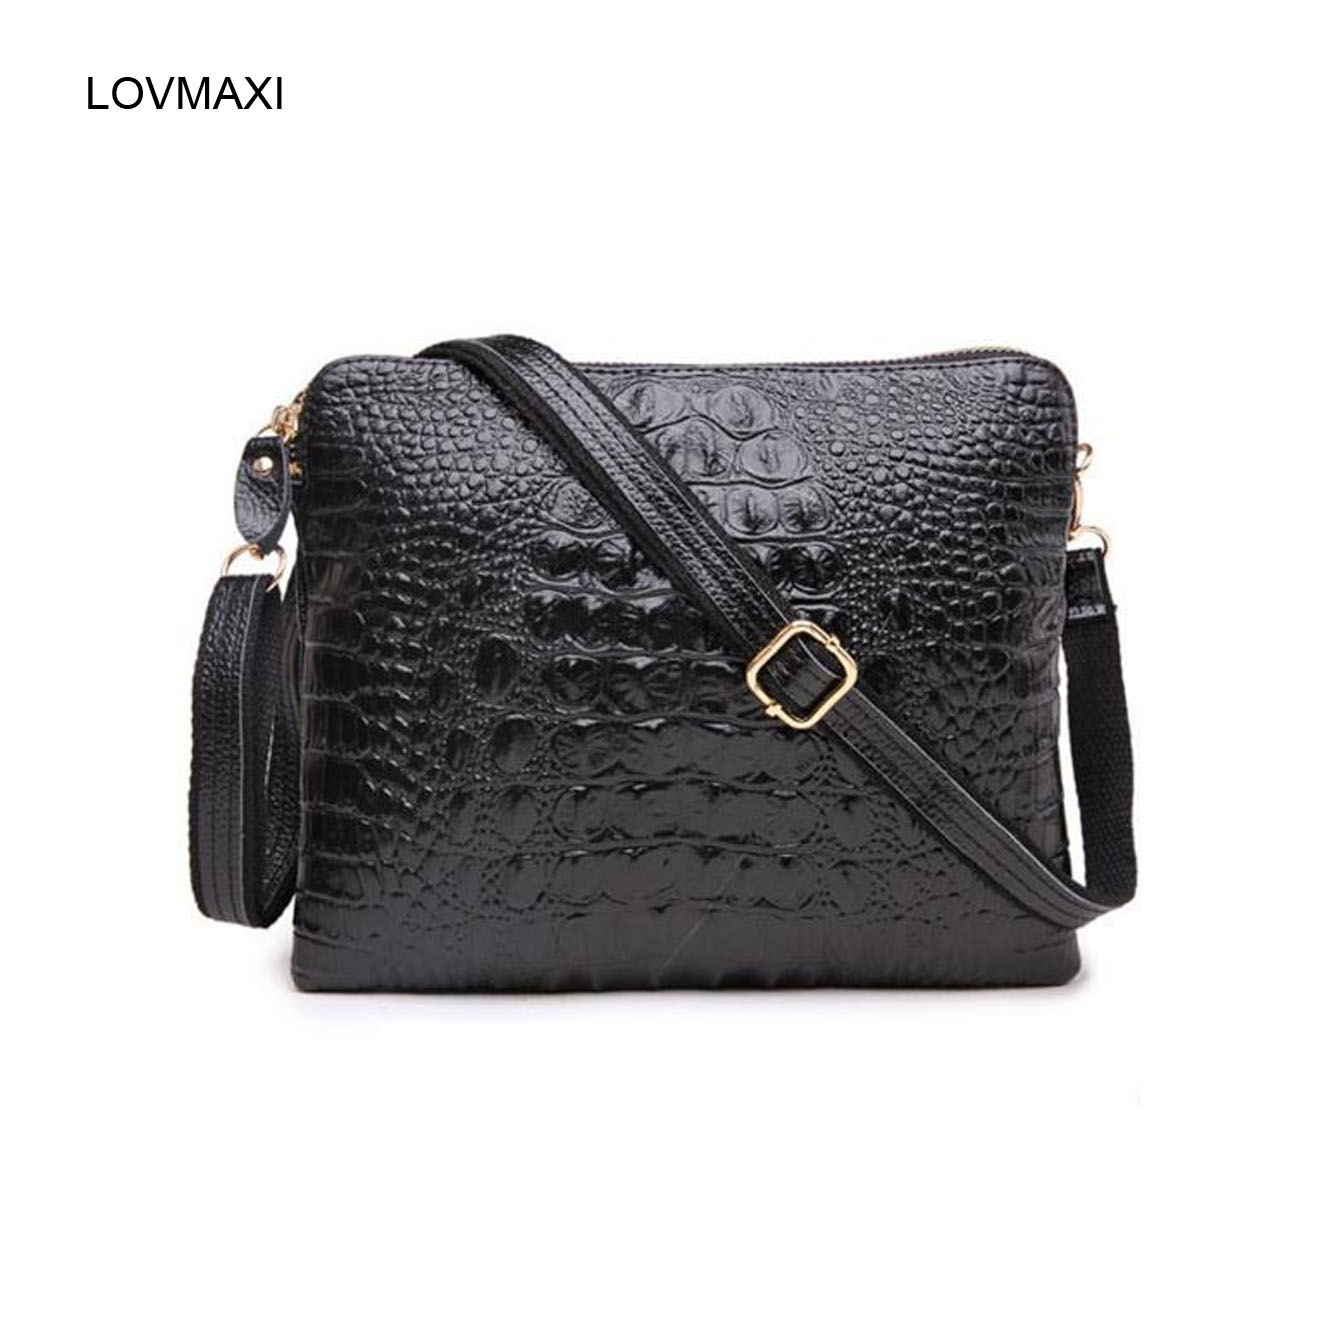 LOVMAXI 2017 Crocodile Pattern Womens Genuine Leather Messenger Bags Day Clutches Fashion Crossbody Bags  Shoulder Handbags<br><br>Aliexpress